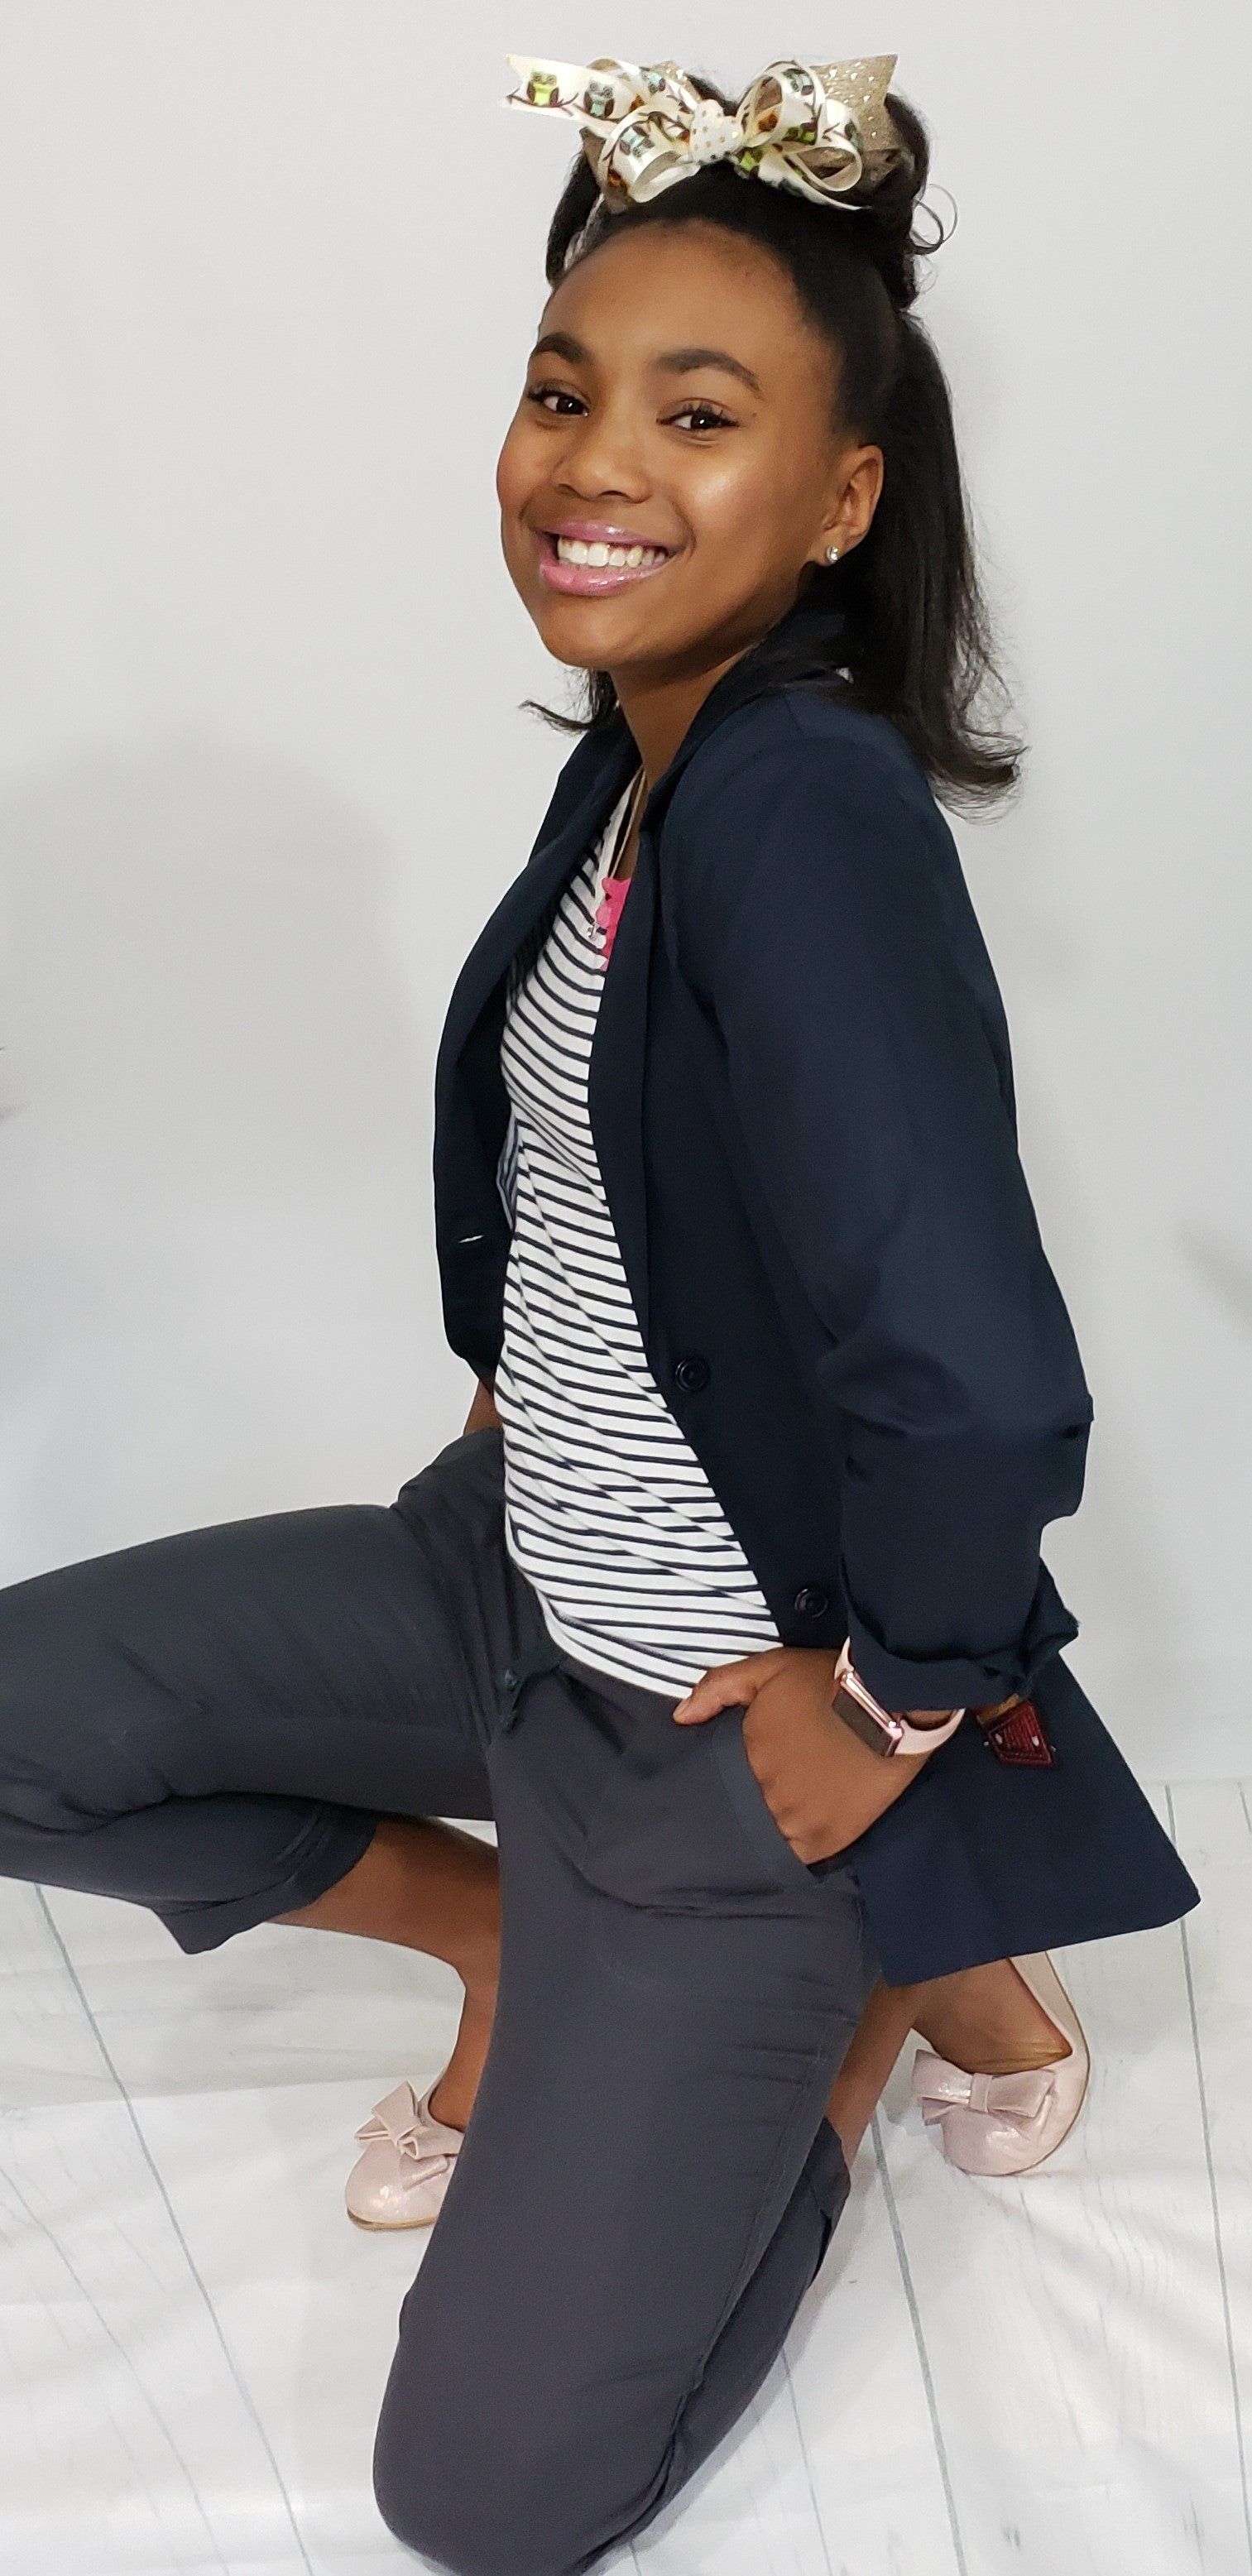 Kelly-Ann Soft Relaxed Fit Jogger Pants in Navy - Houzz of DVA Boutique